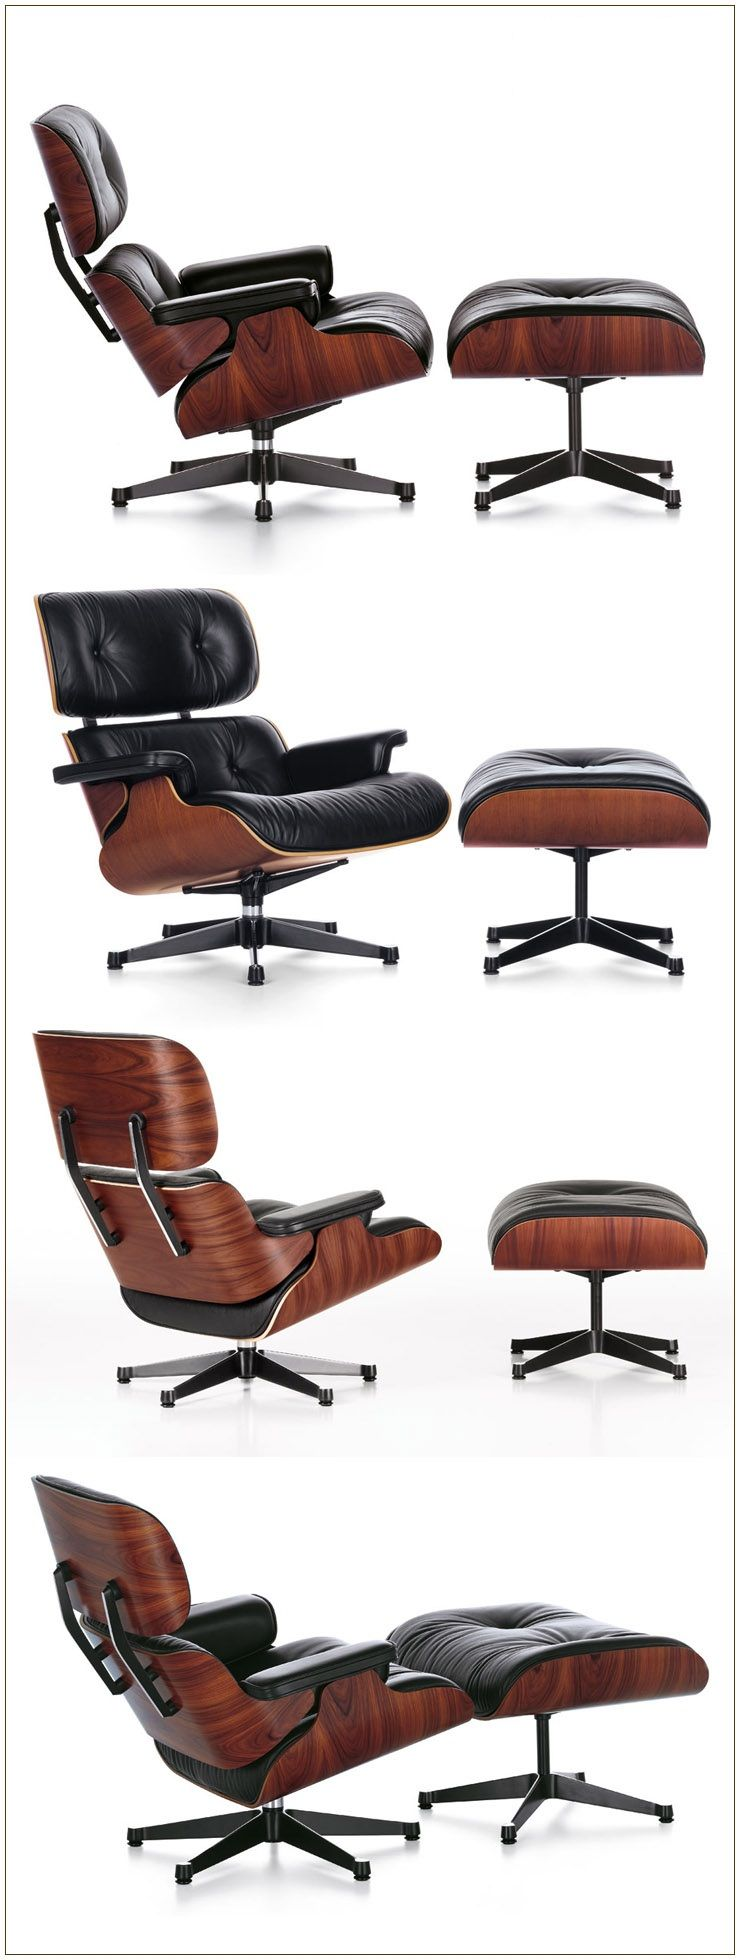 70 Eames Lounge Chair Ideen Lounge Chair Eames Innenarchitektur